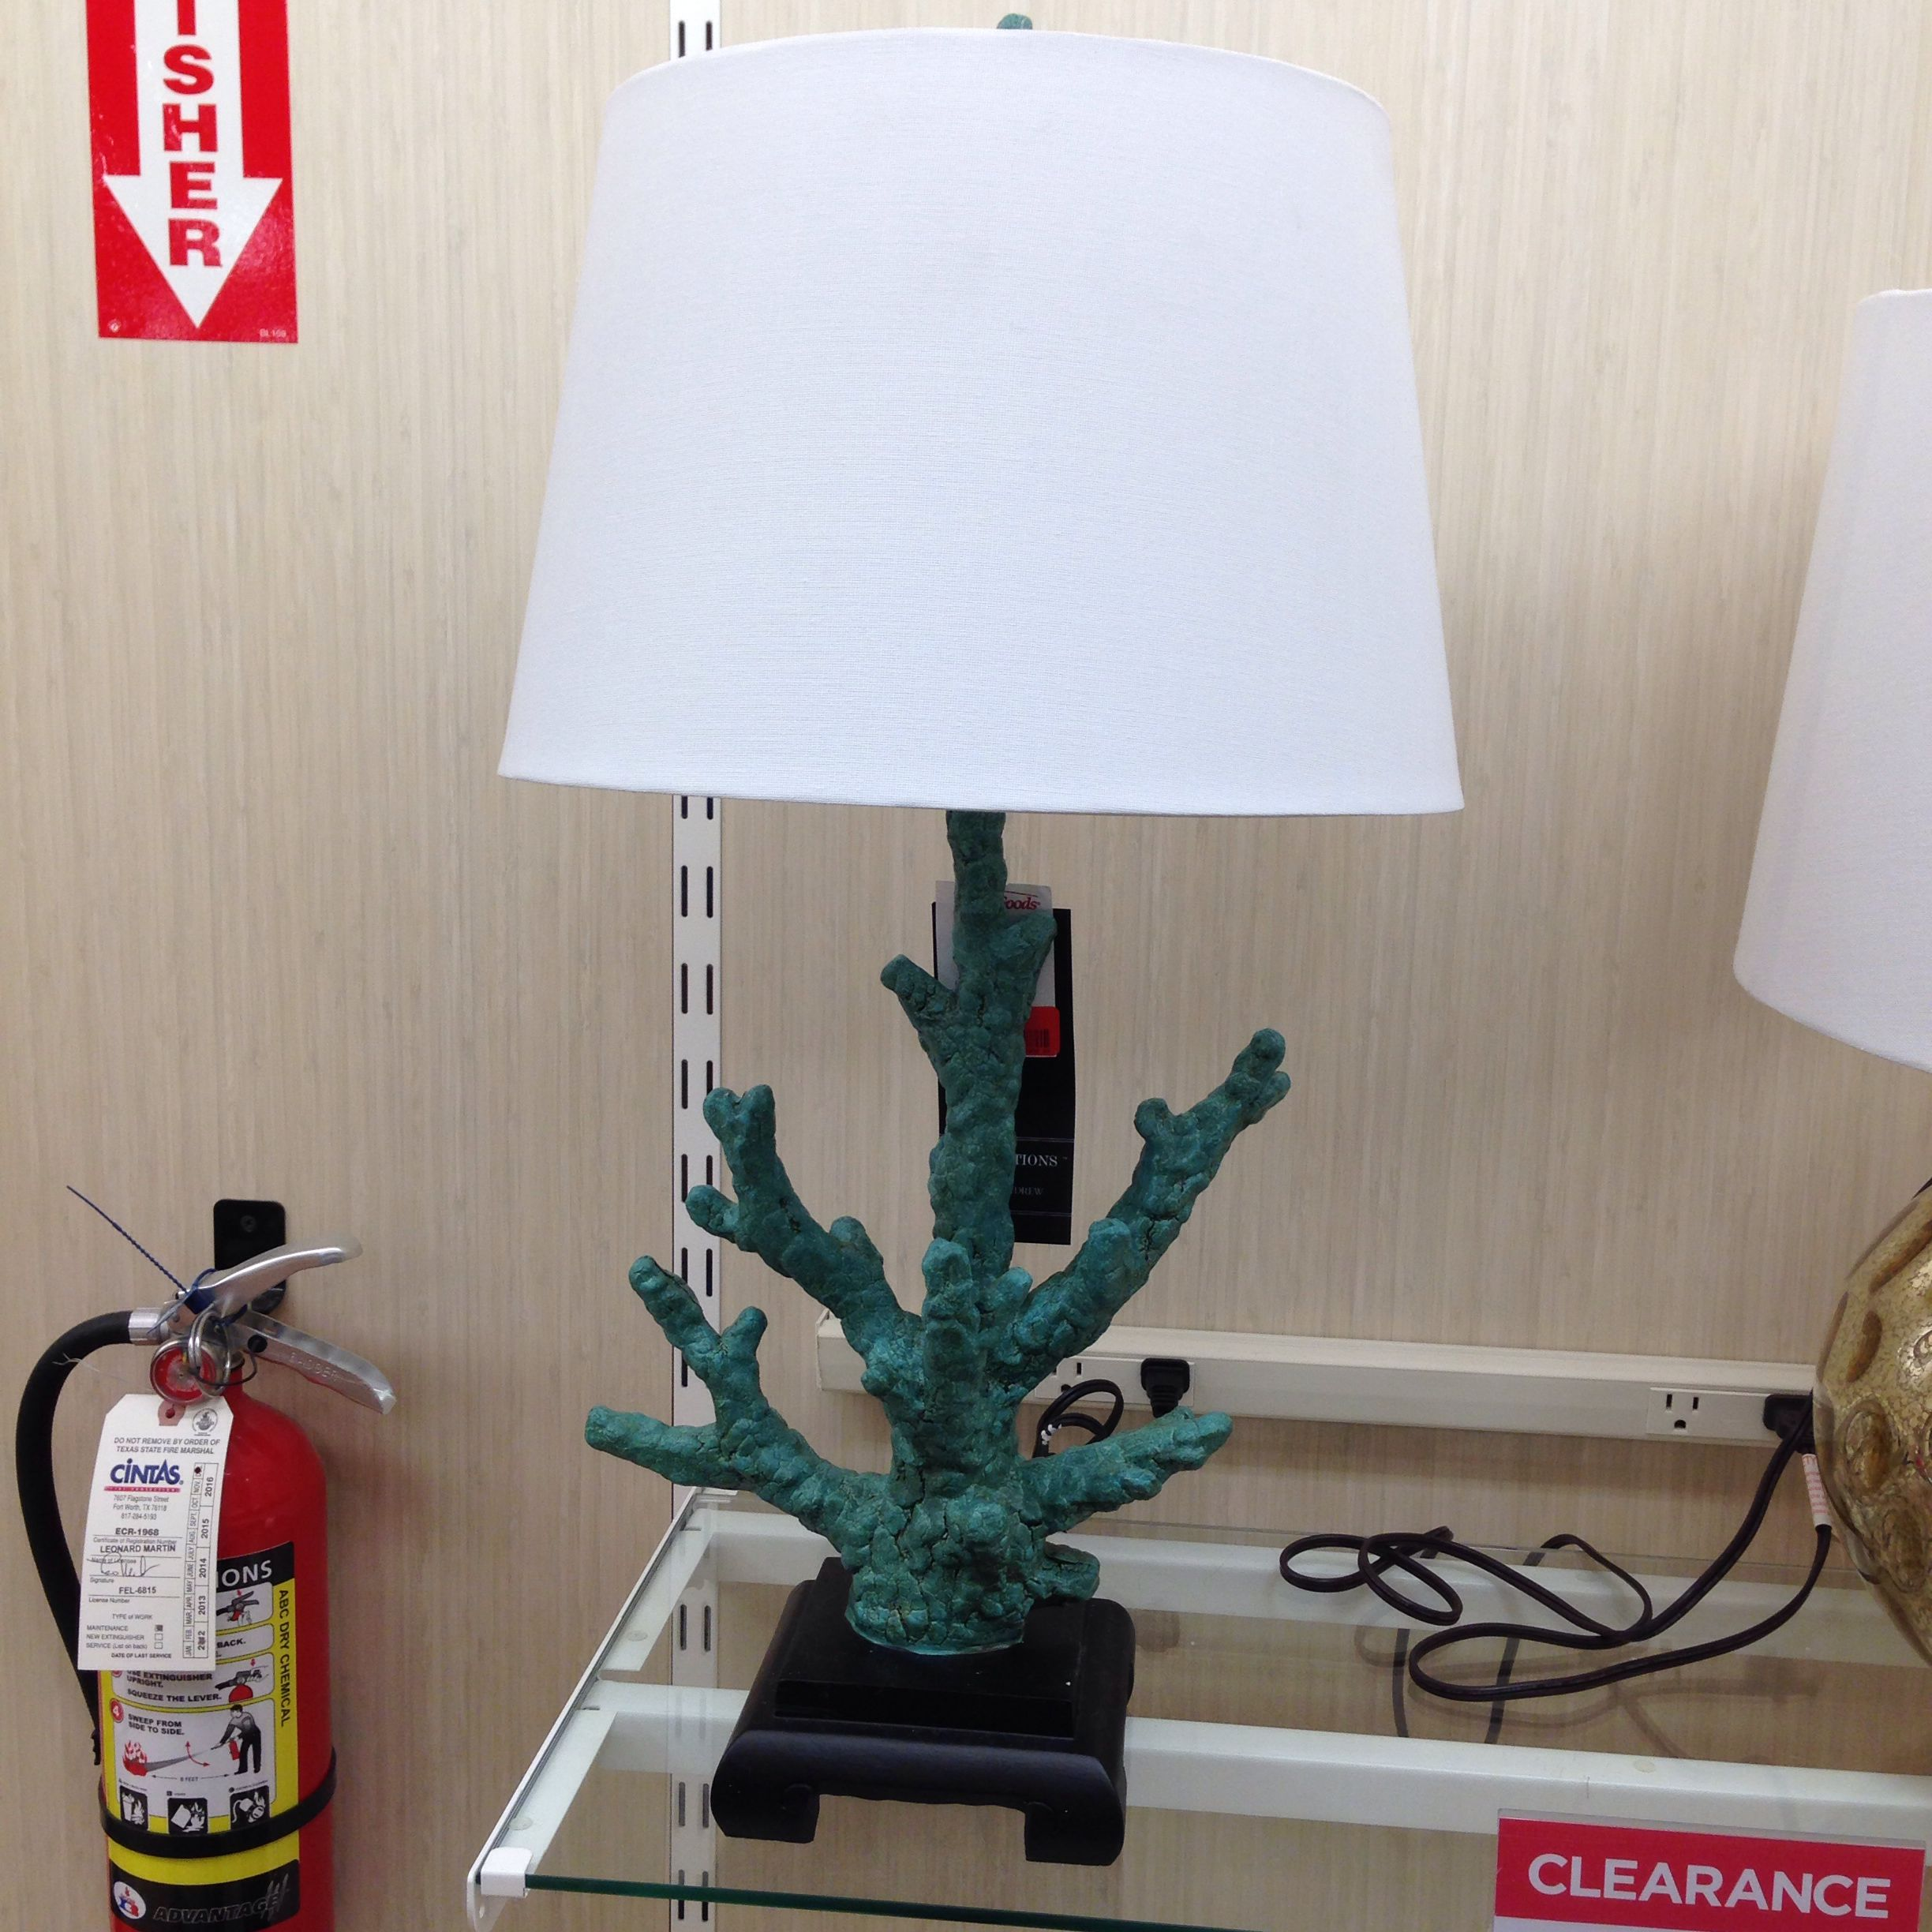 Coral table lamp home goods store table lamp decor